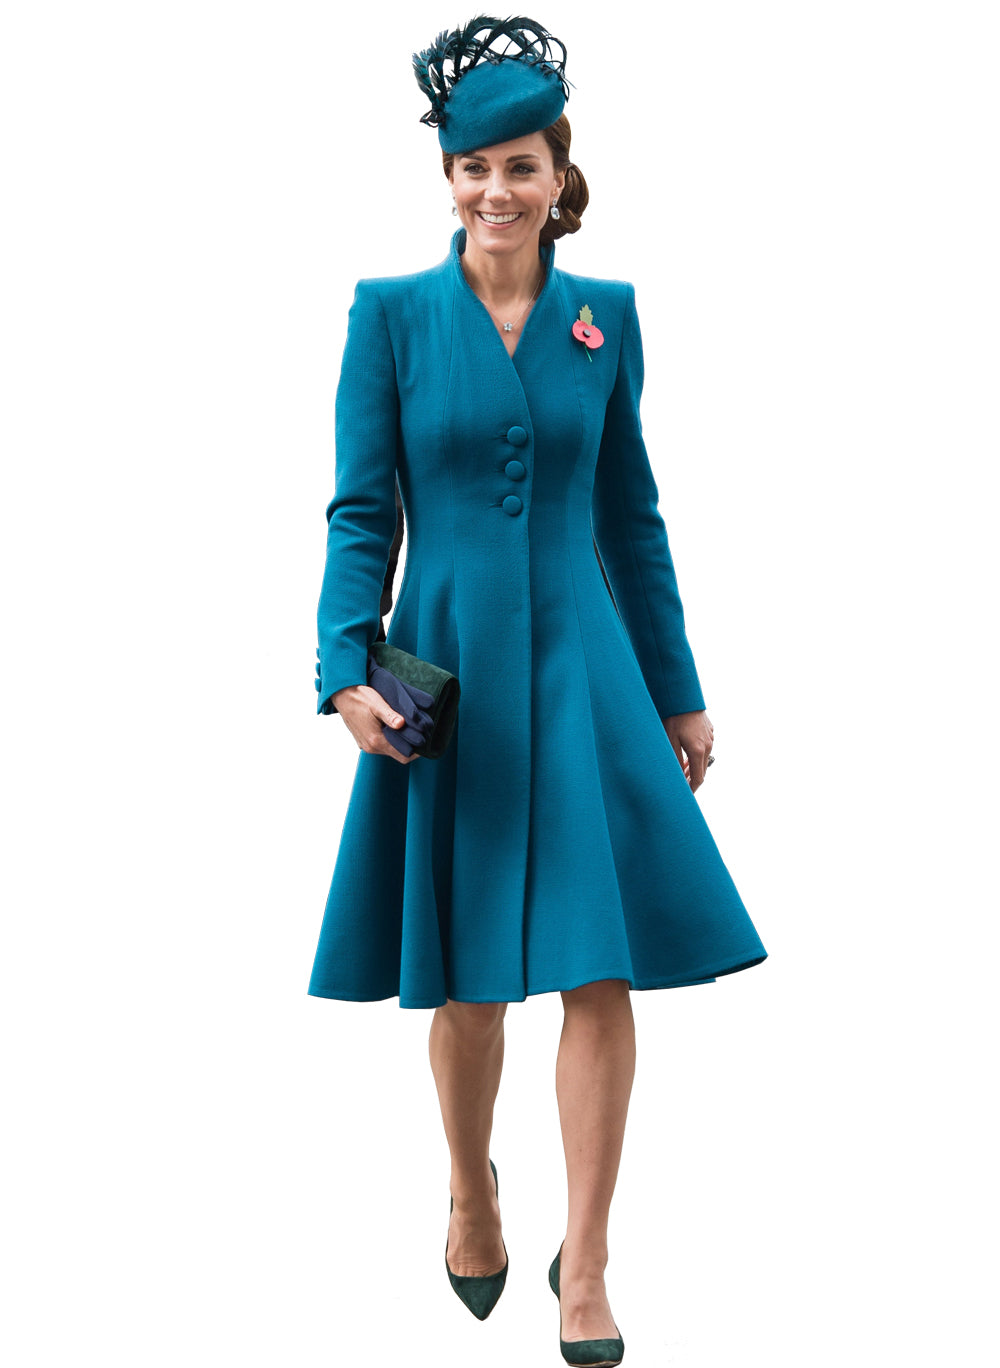 Kate Swan-Neck Fit And Flare Midi Dress Coat in Teal